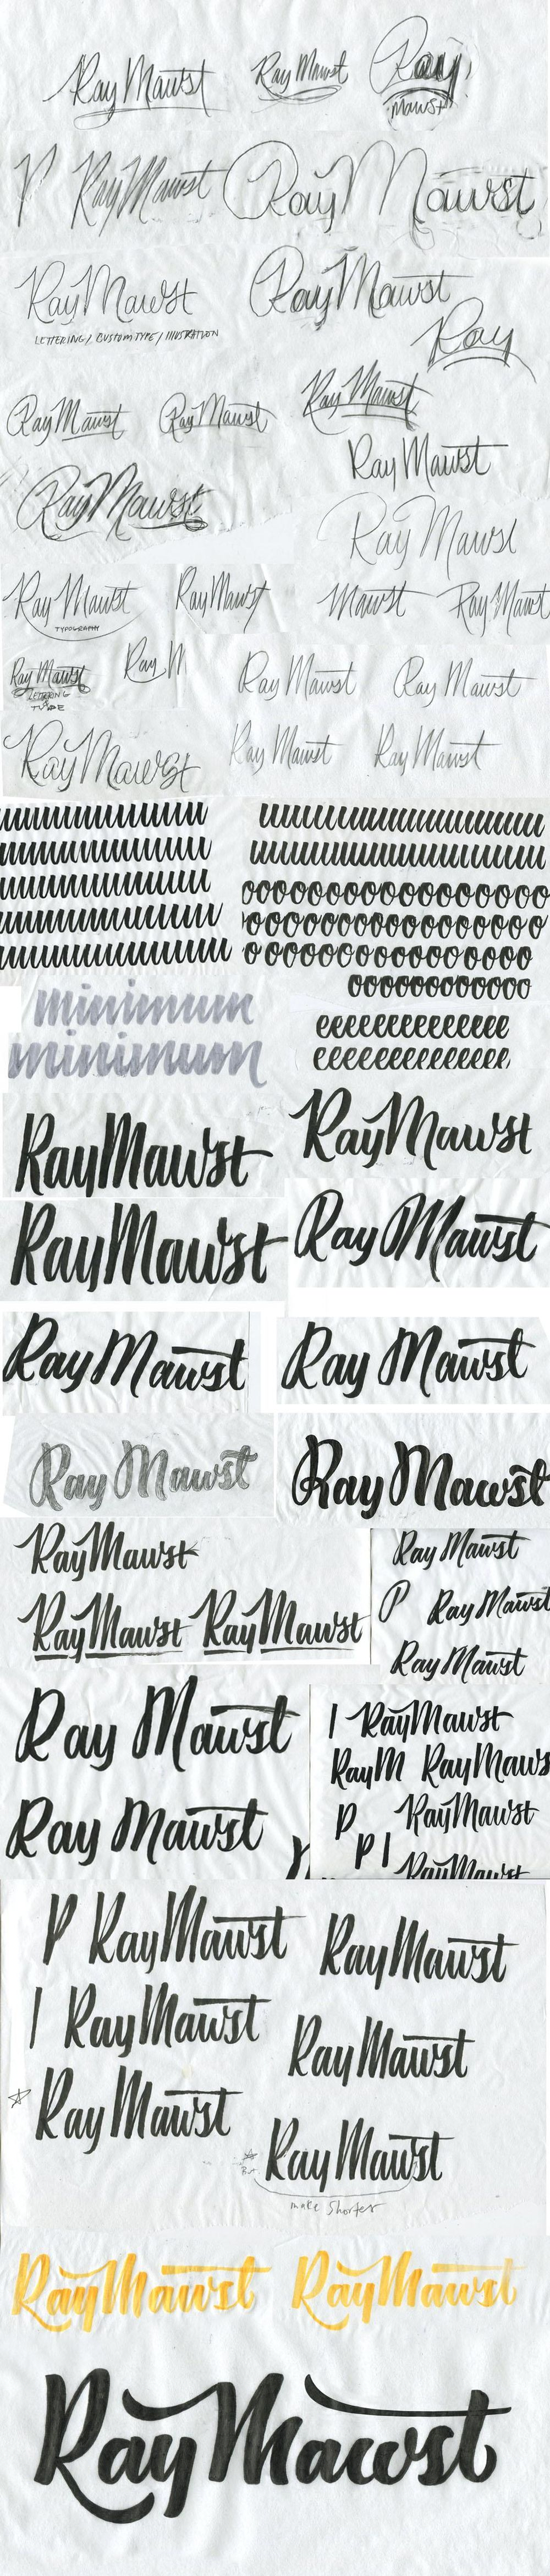 Ray Mawst - Lettering and Illustration - image 5 - student project